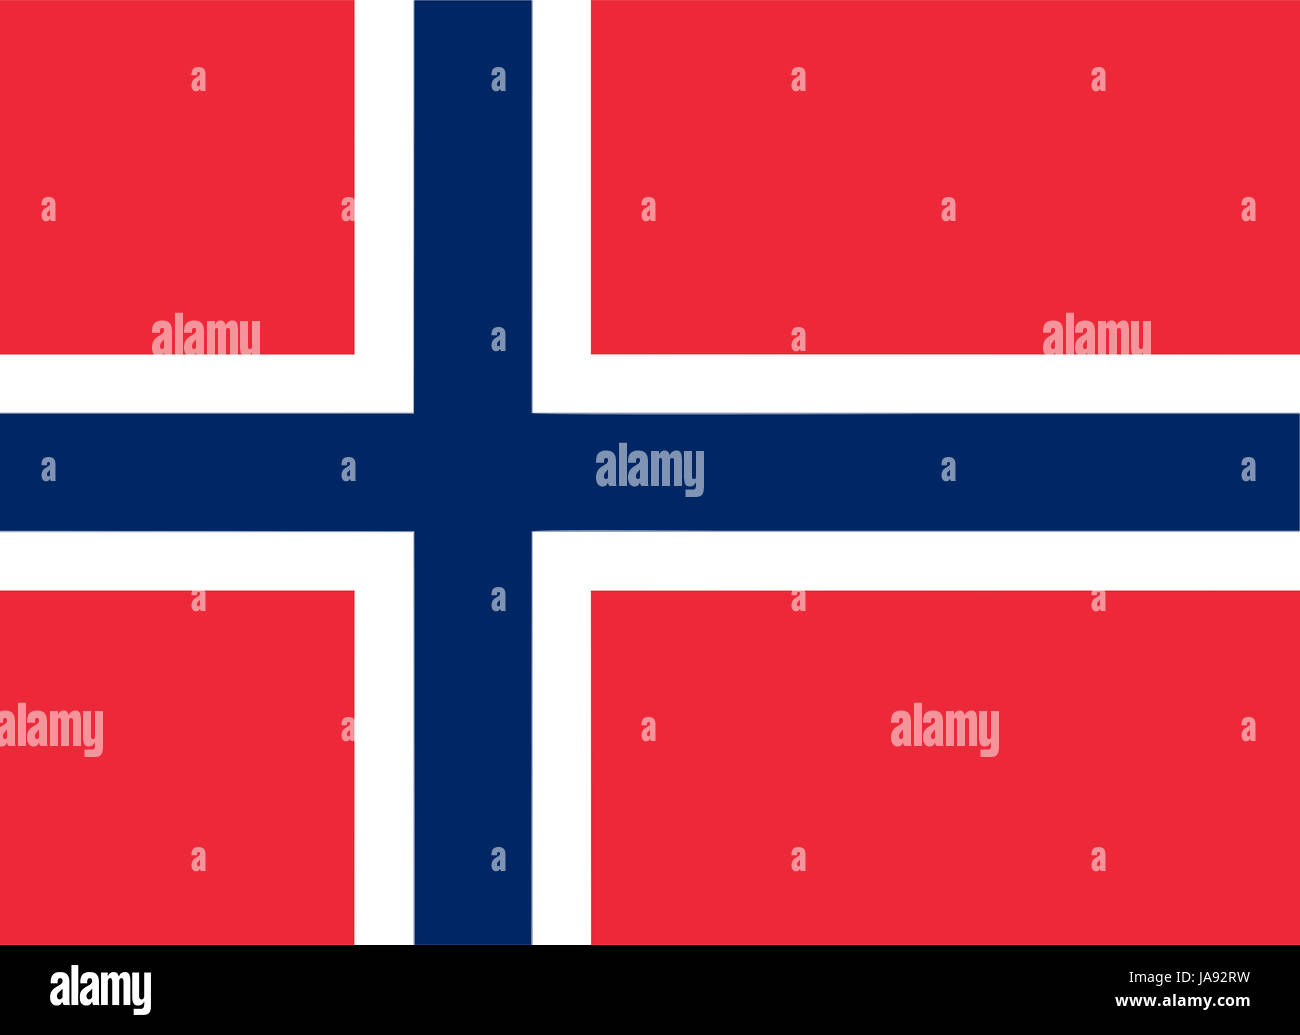 Norwegian flag of Norway - Proportions: 22:16 - Colours: Red PMS 032 U, Blue PMS 281 U, White - Stock Image